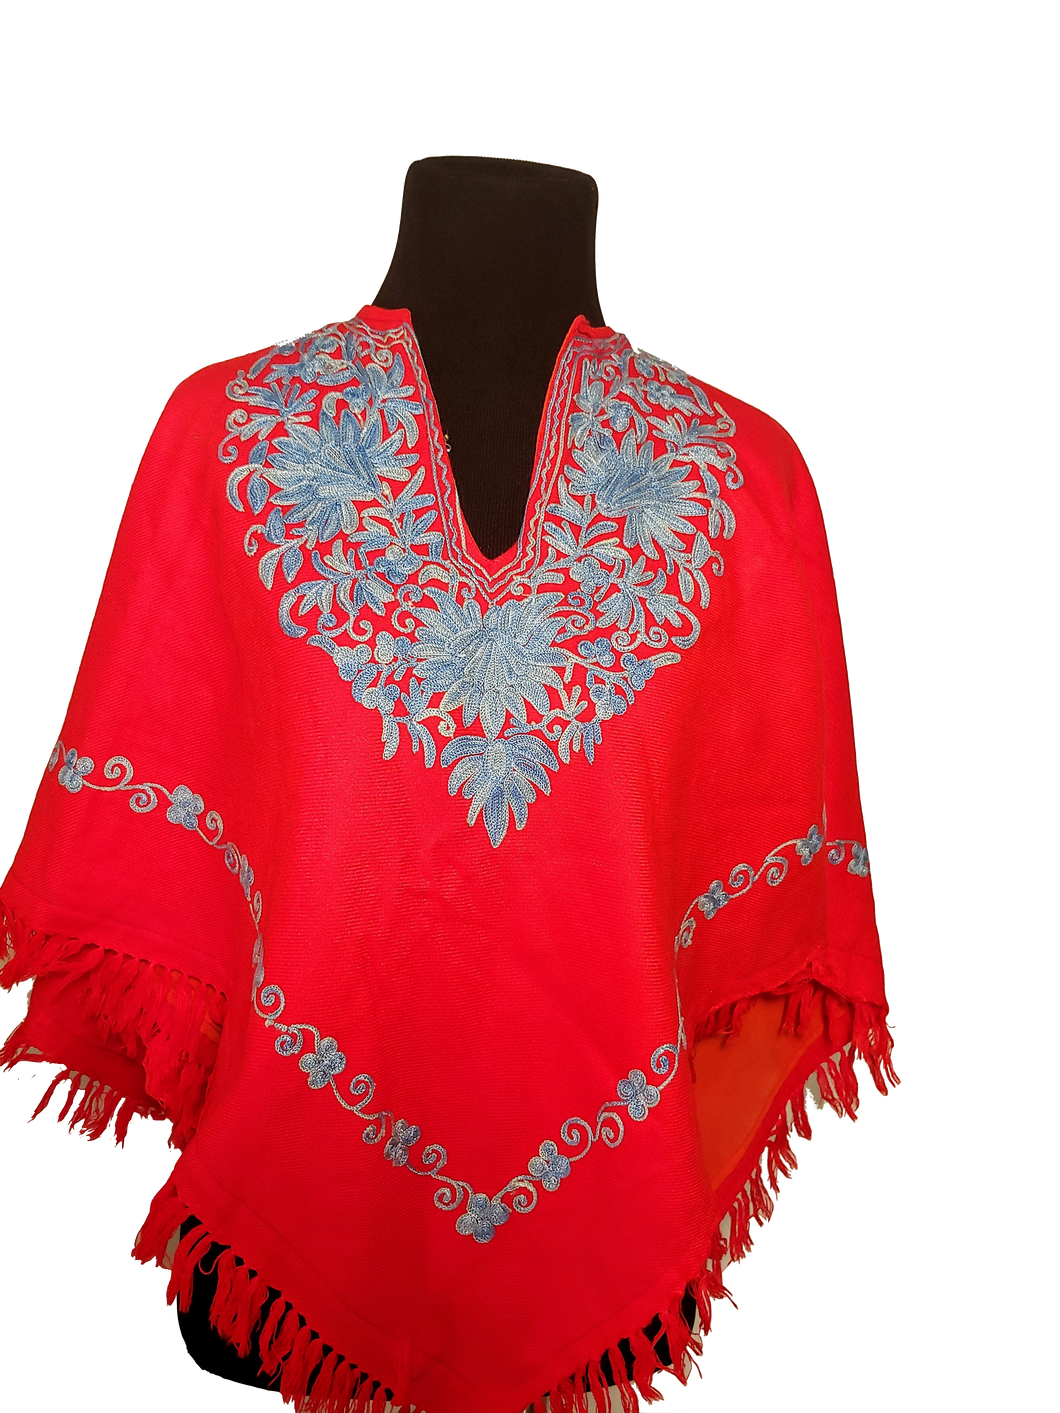 Awesome ponchos (Medium- Should fit all) - Multiple color available